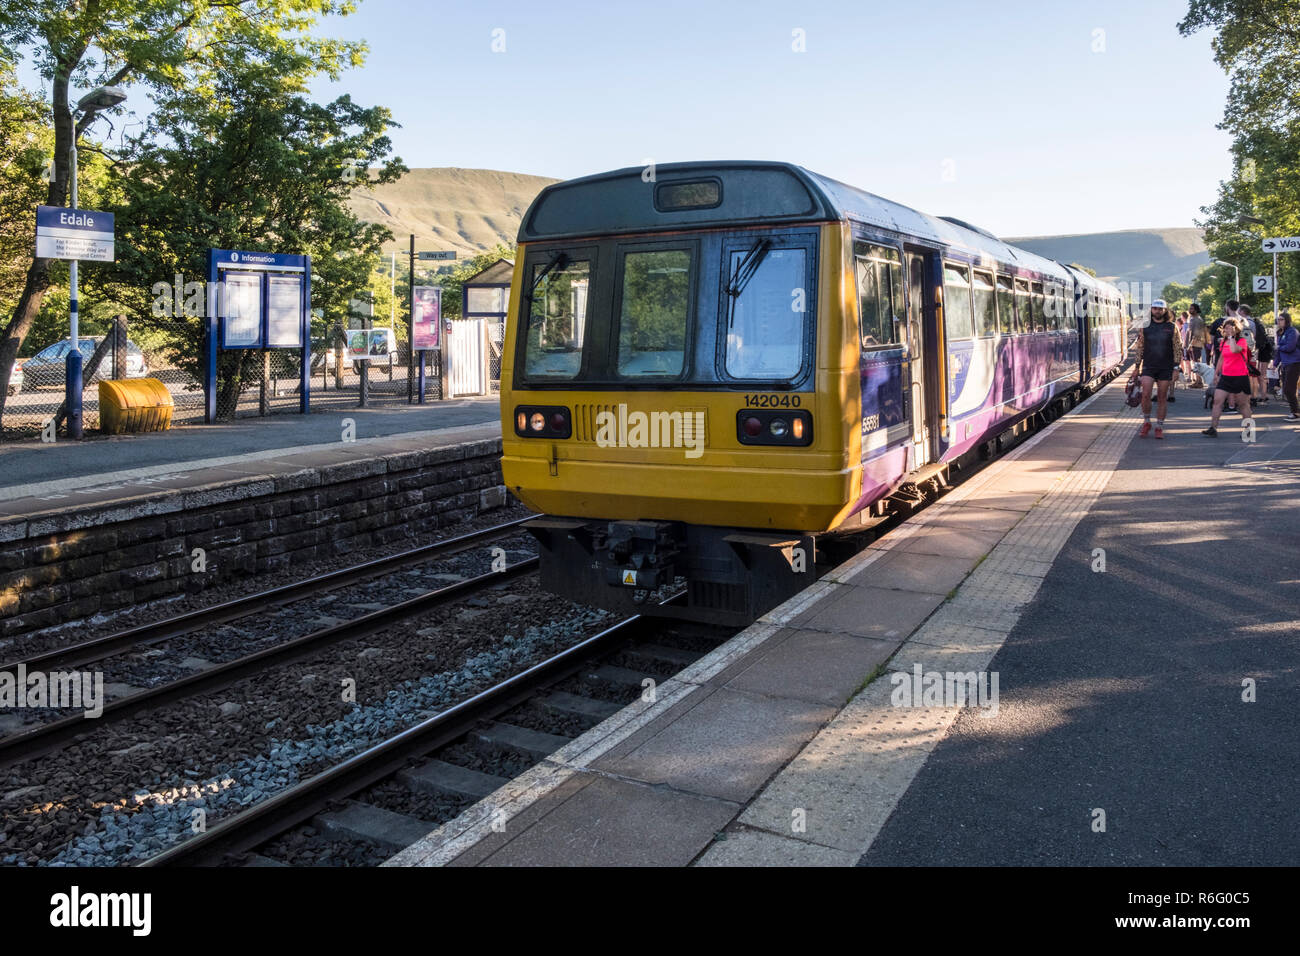 Northern Rail train arriving at Edale Railway Station on a Summer evening, Edale, Derbyshire, Peak District, England, UK - Stock Image